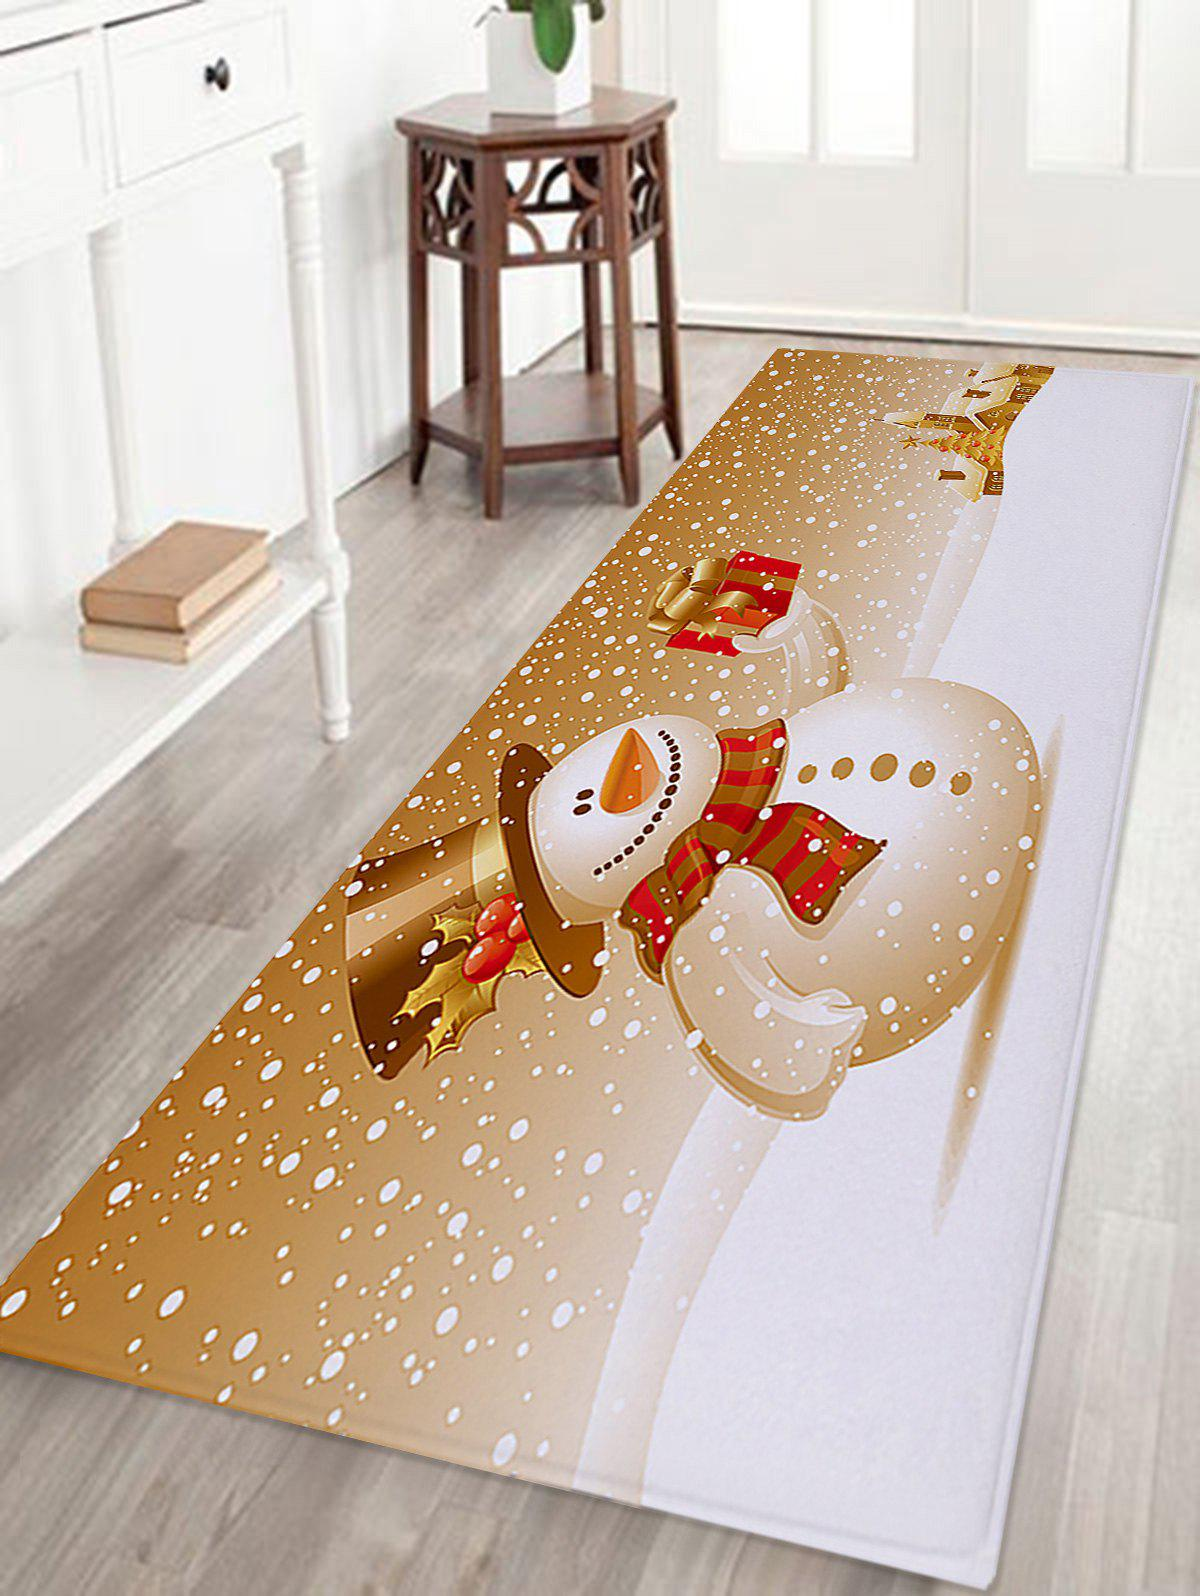 Christmas Snowman Print Coral Fleece Skidproof Bath MatHOME<br><br>Size: W16 INCH * L47 INCH; Color: COLORMIX; Products Type: Bath rugs; Materials: Coral FLeece; Pattern: Gift,Snowman; Style: Festival; Shape: Rectangular; Package Contents: 1 x Rug;